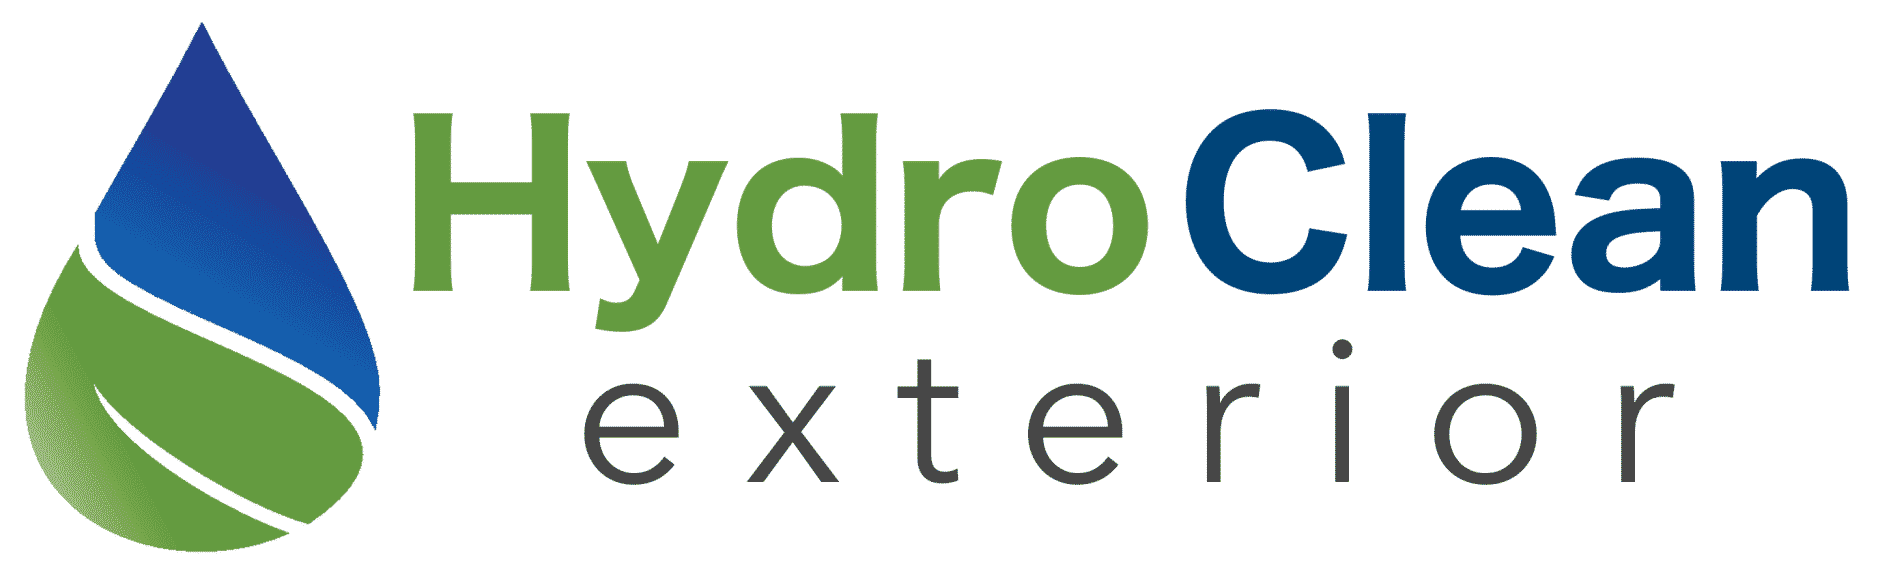 Hydro Clean Exterior Ltd